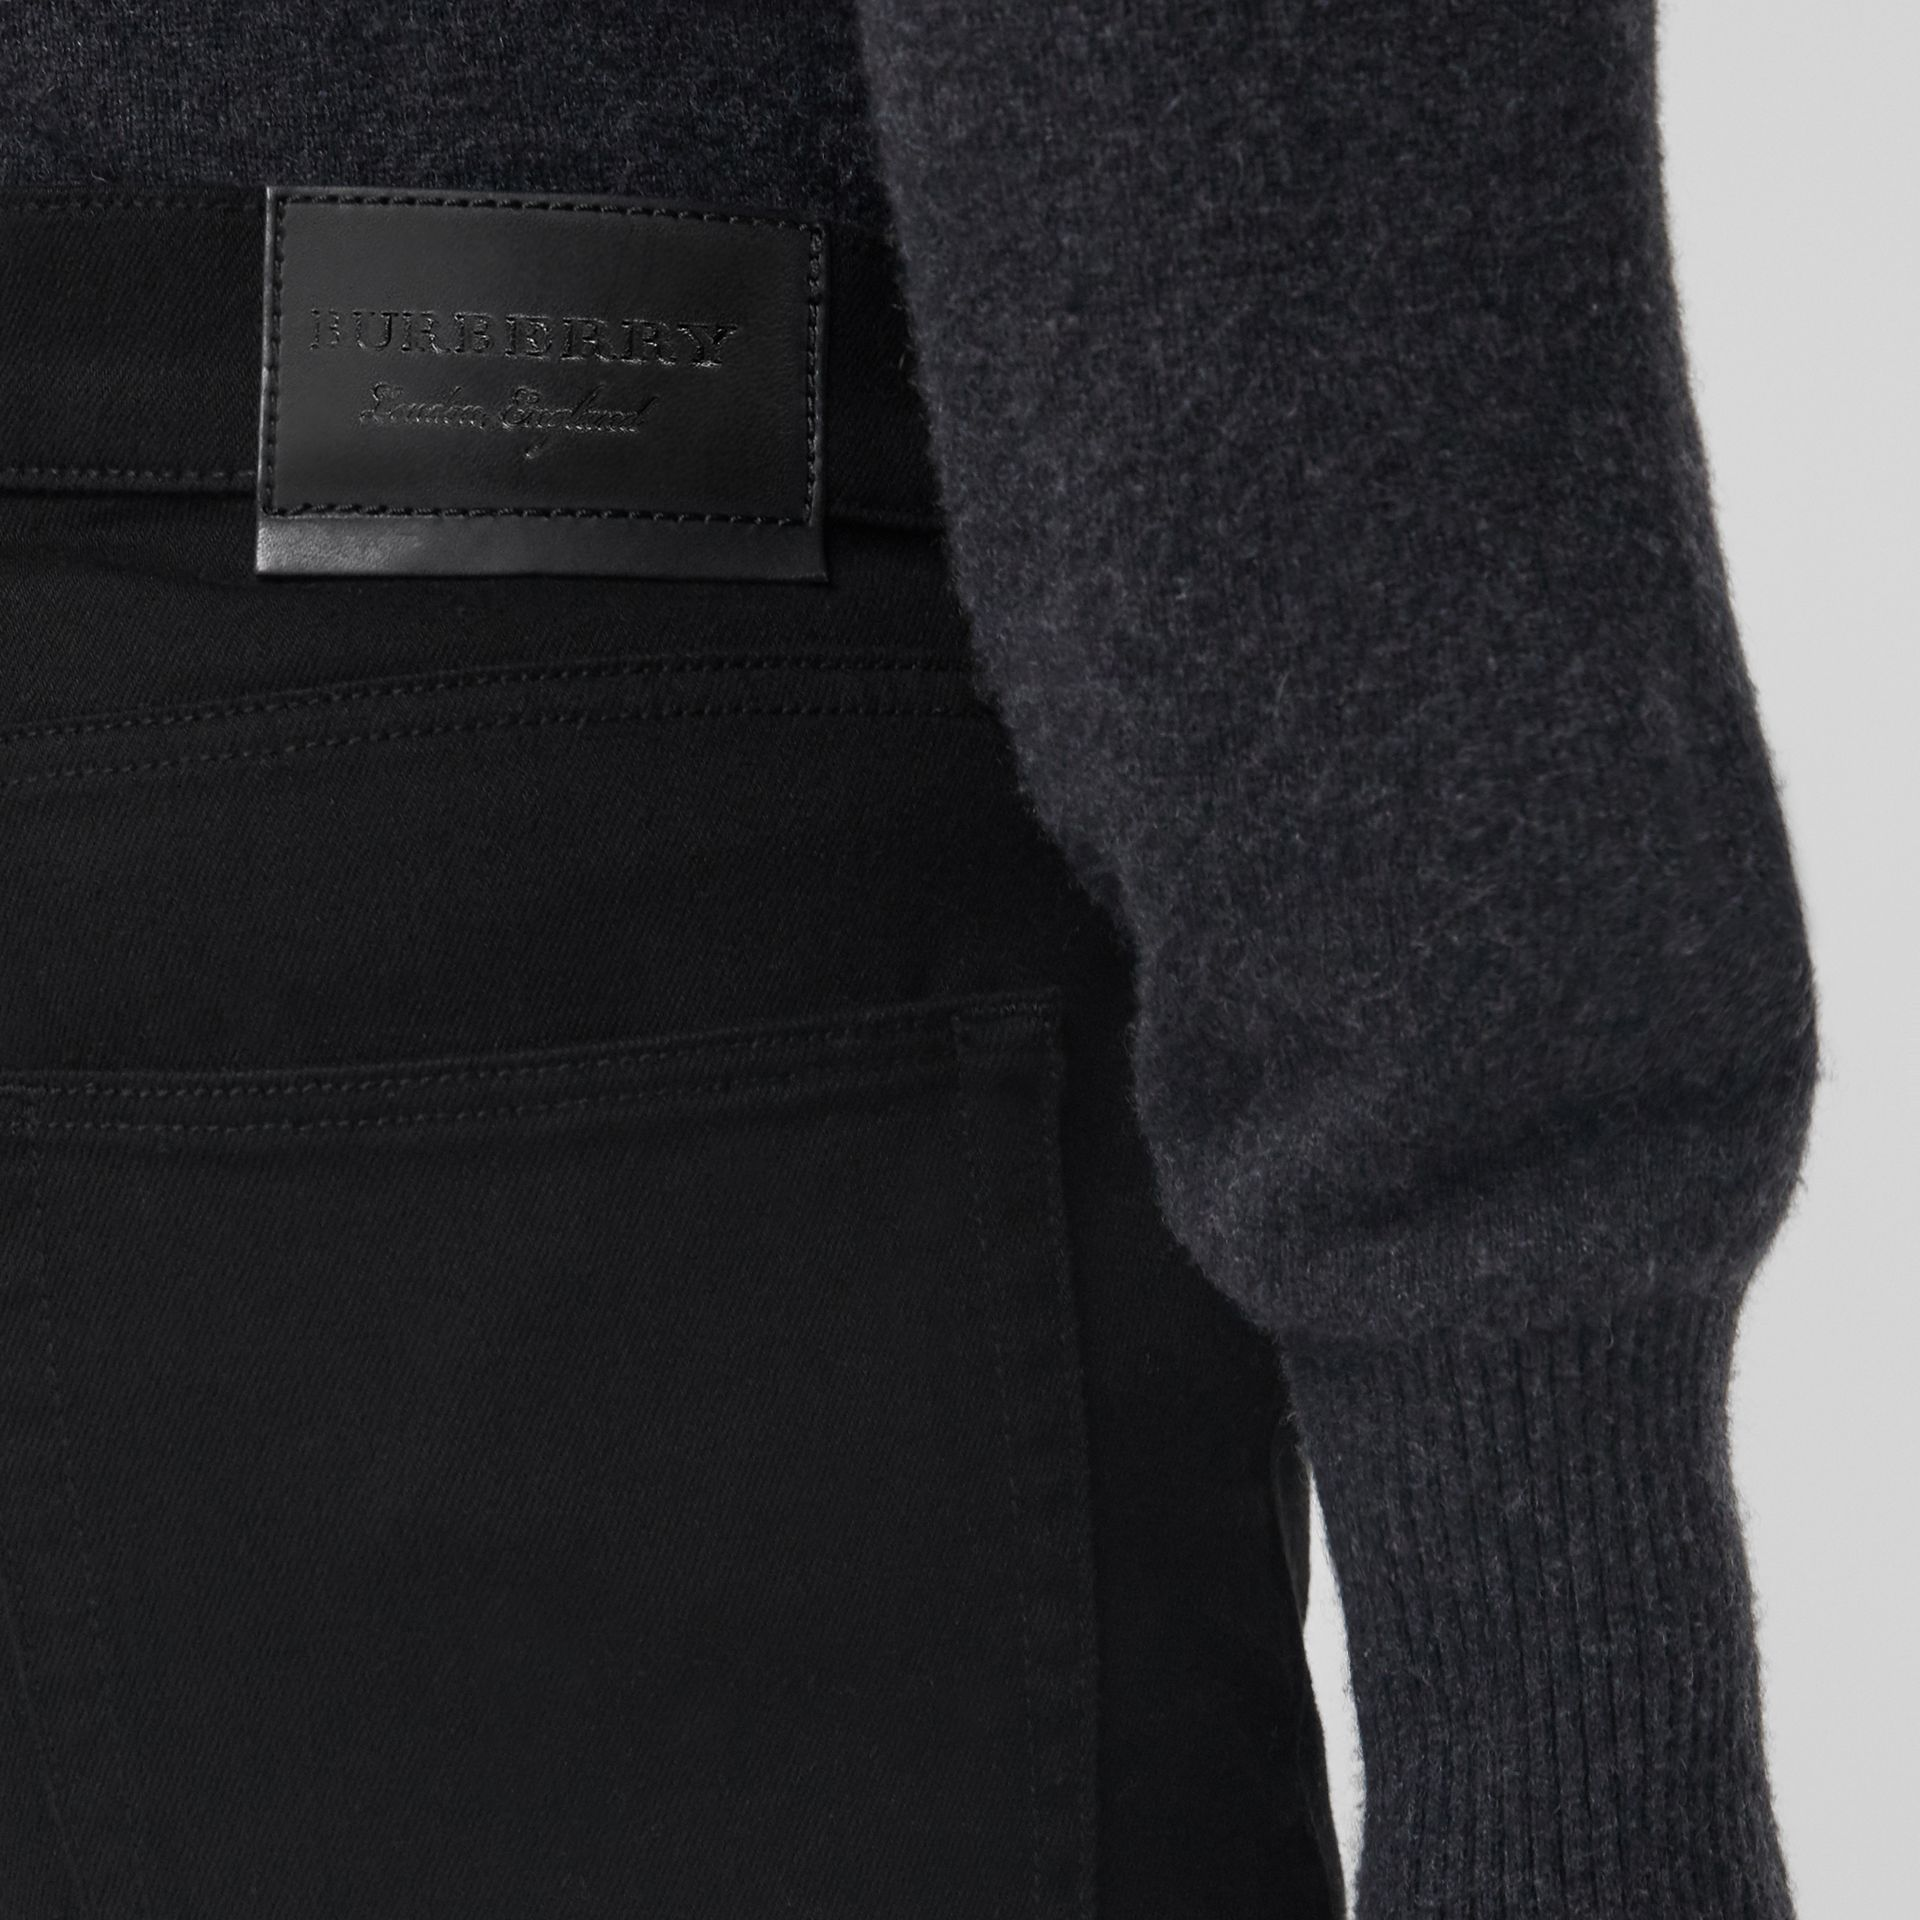 Jean denim extensible de coupe étroite (Noir) - Homme | Burberry Canada - photo de la galerie 1